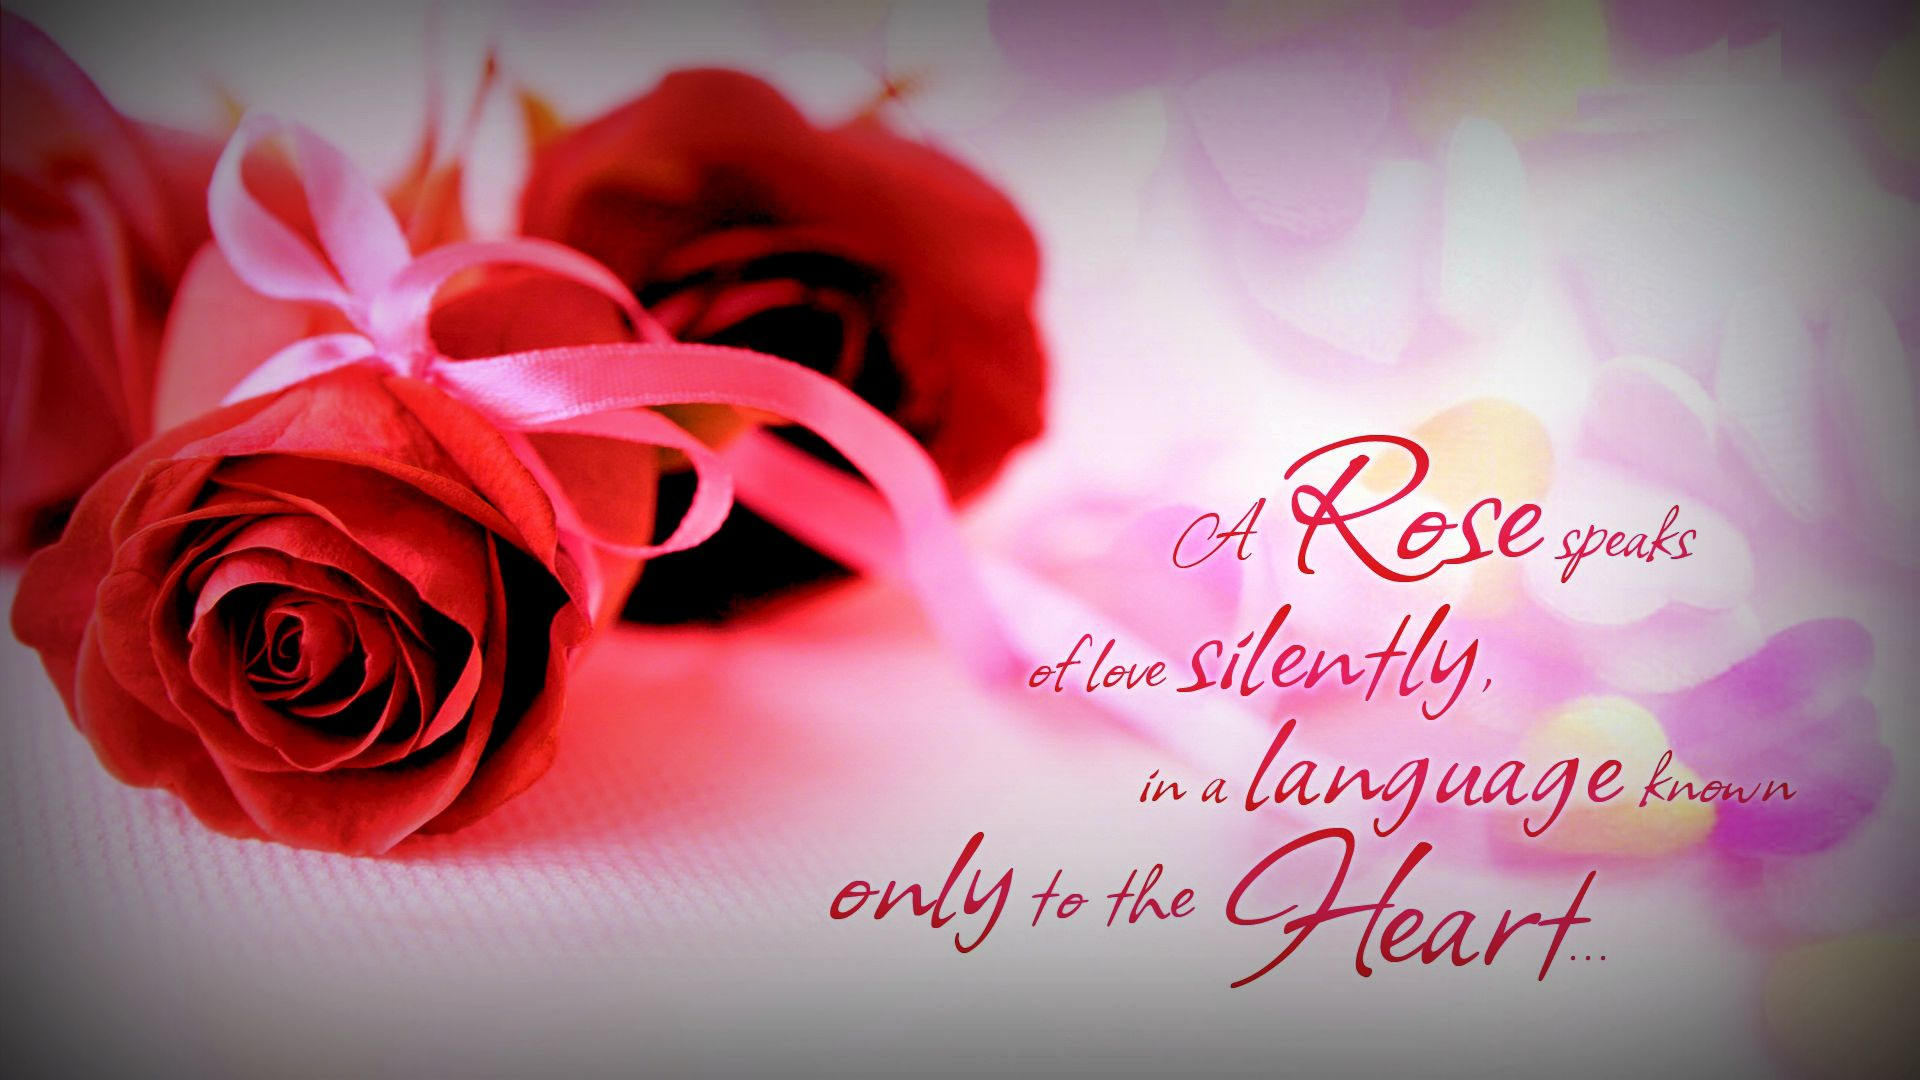 Love Quotes For Him With Roses : ... rose-with-love-quotes-rose-wallpapers-with-love-quotes-rose-love